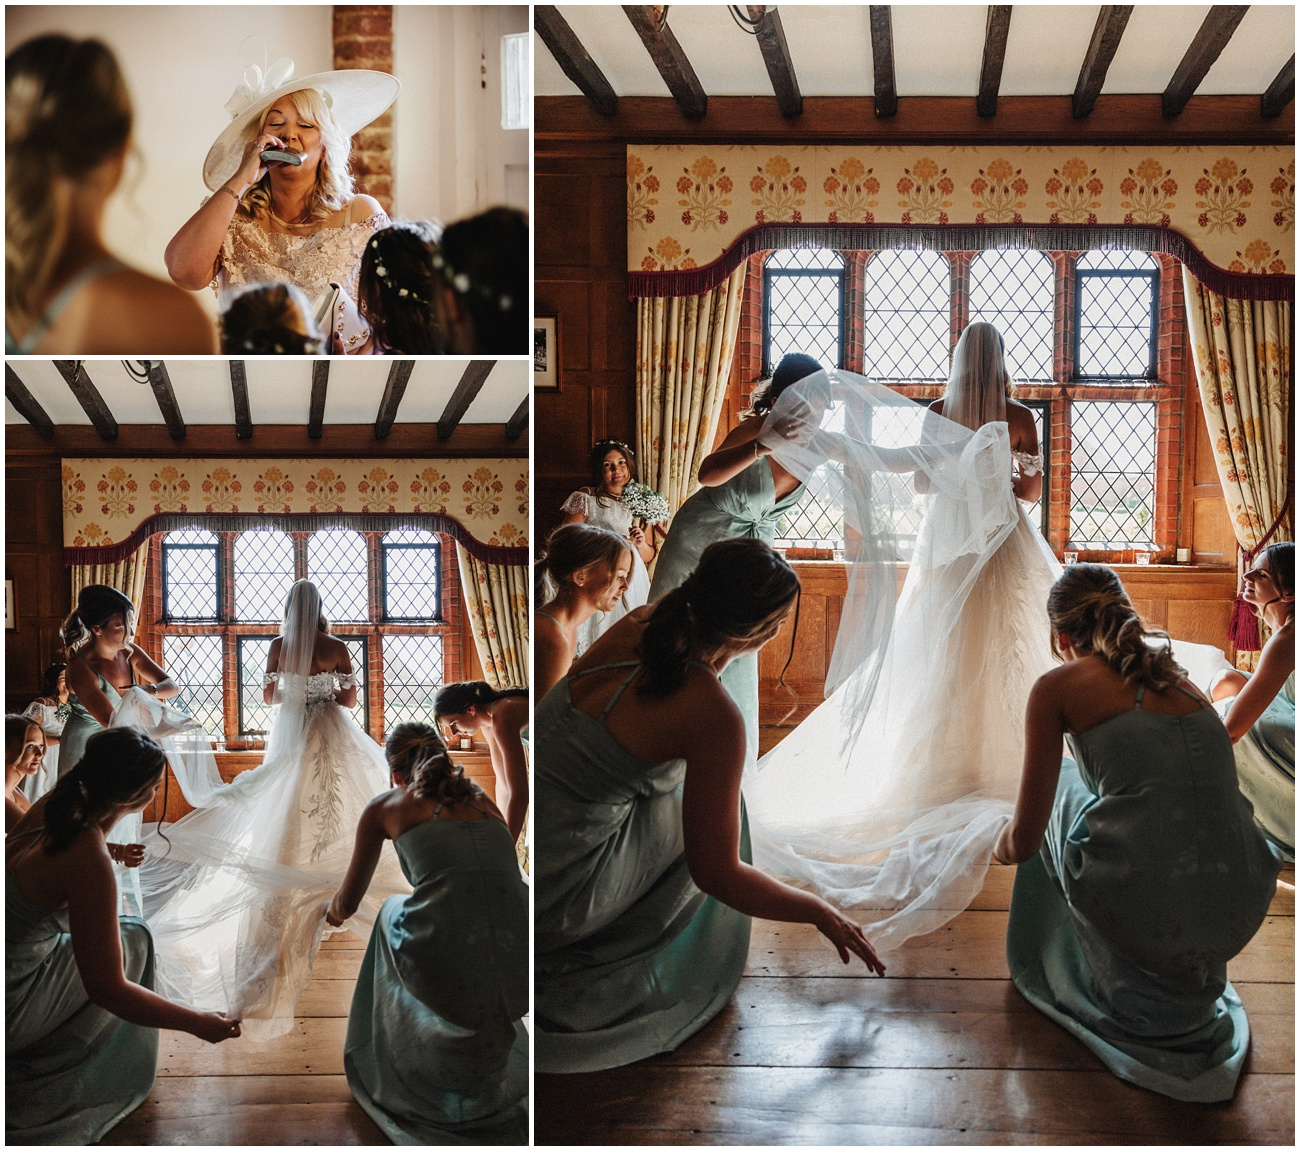 The bridesmaids adjust the brides wedding dress at Leez Priory